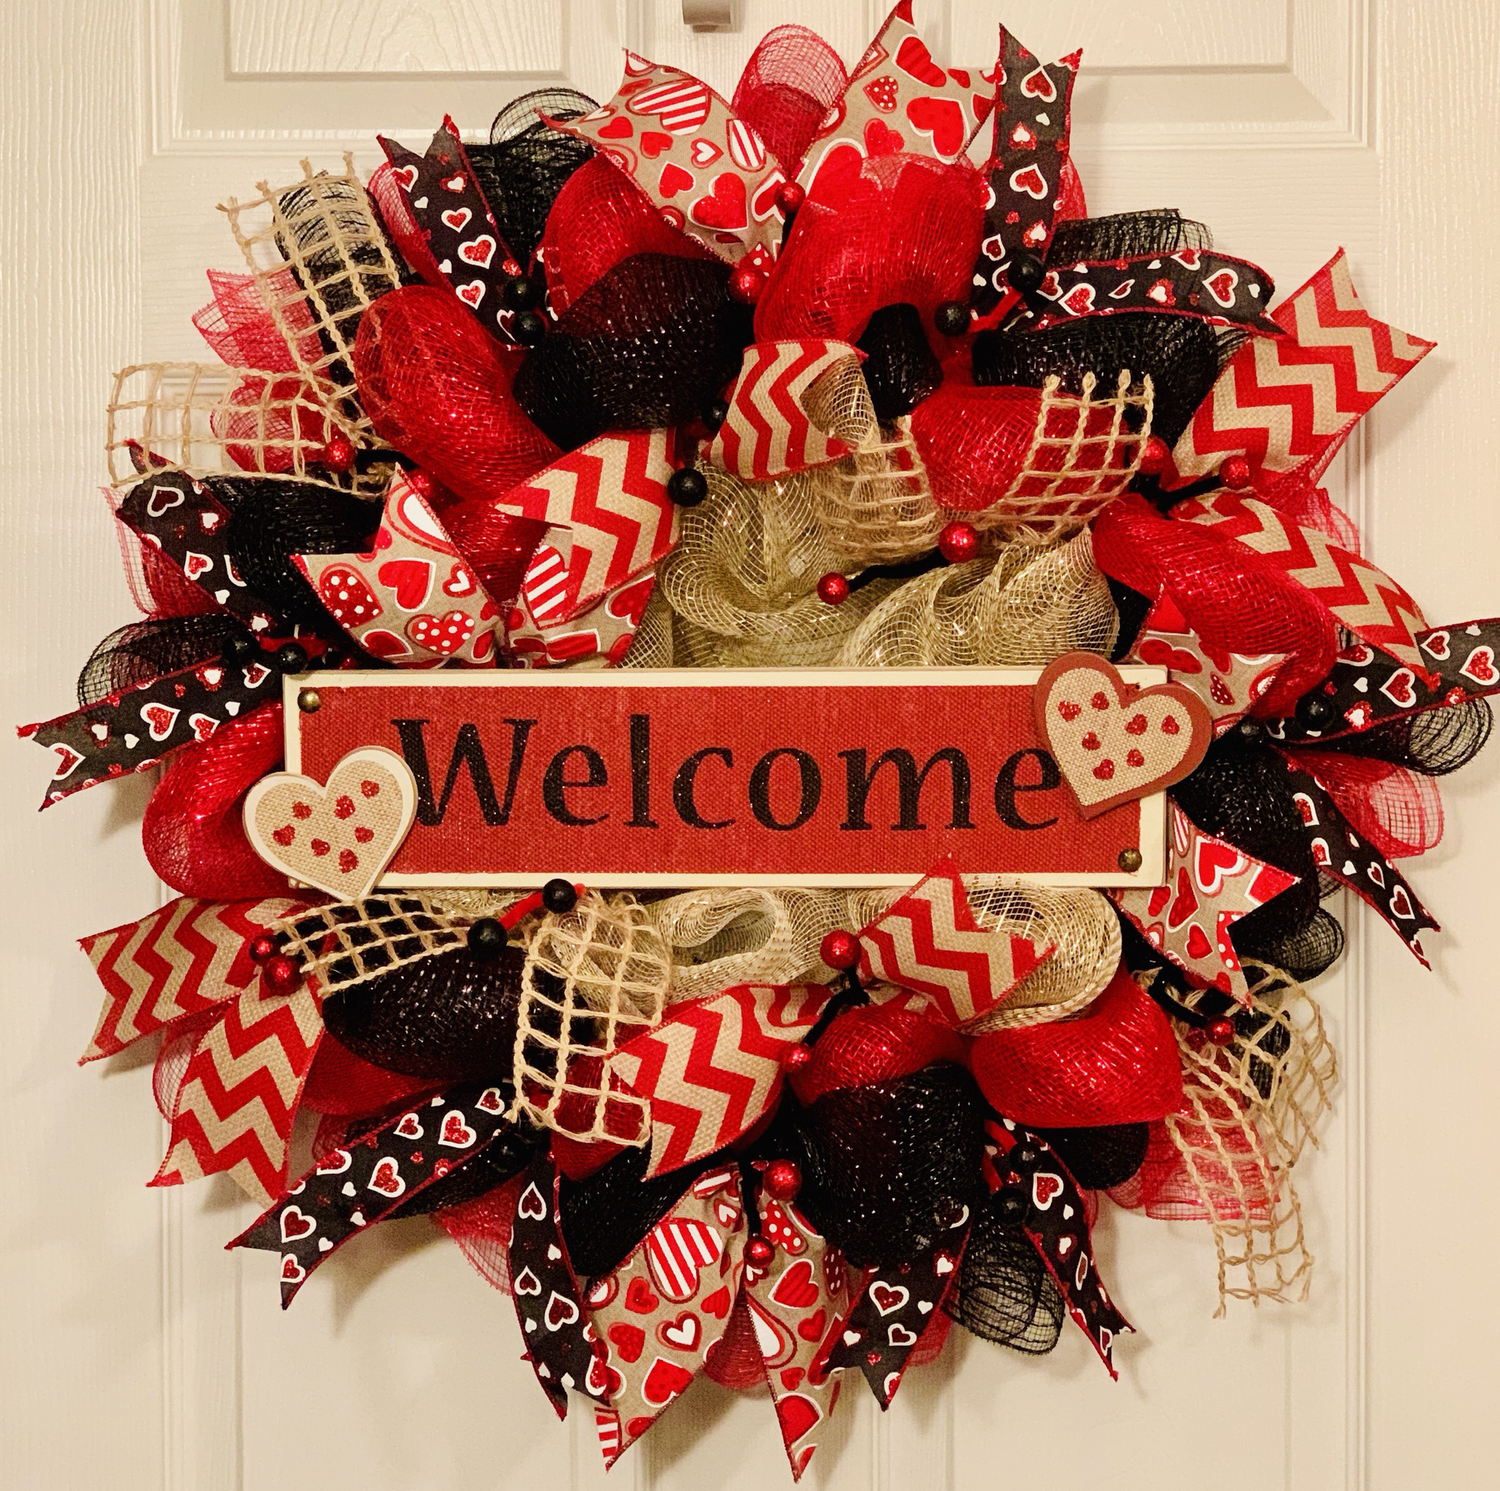 Welcome Wreath for Front Door, Valentine's Day Gift, Valentine's Day Decor, Everyday Wreath, A Touch of Faith